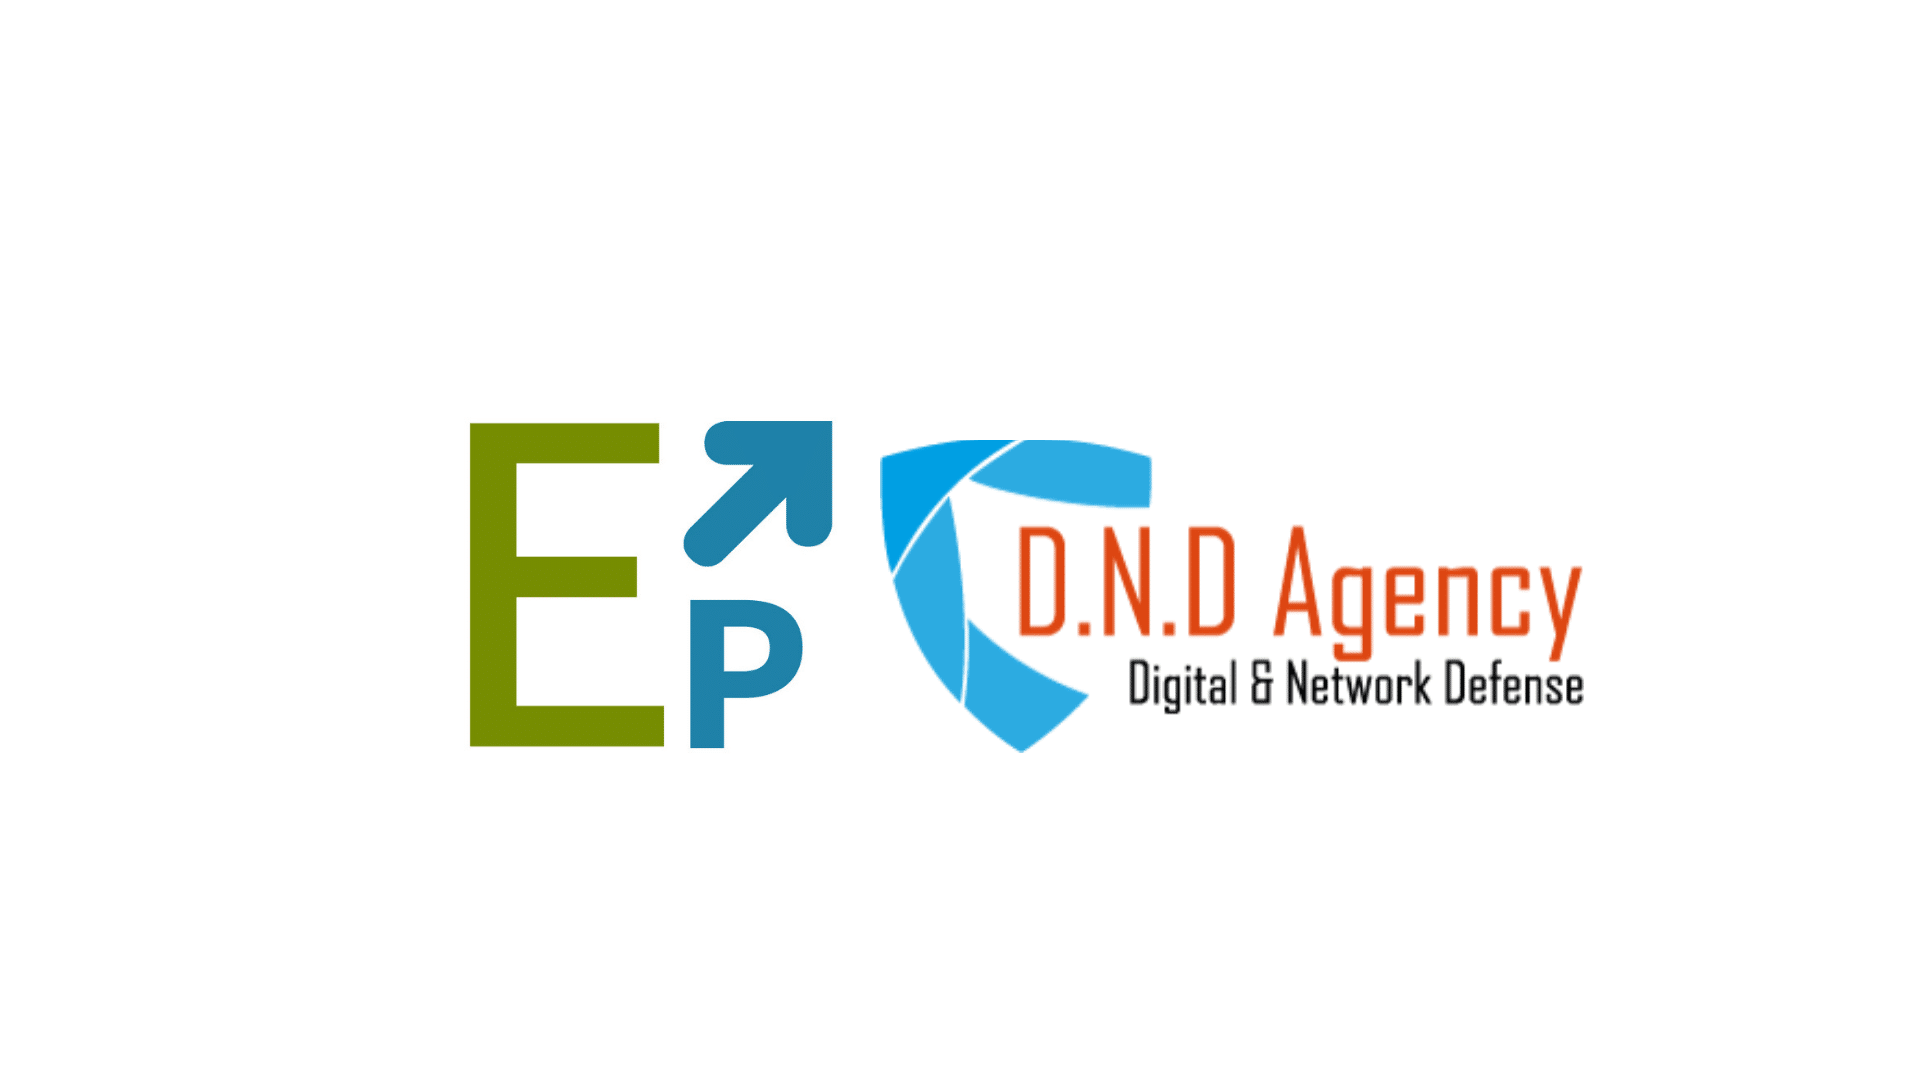 Ep formation DND Agency